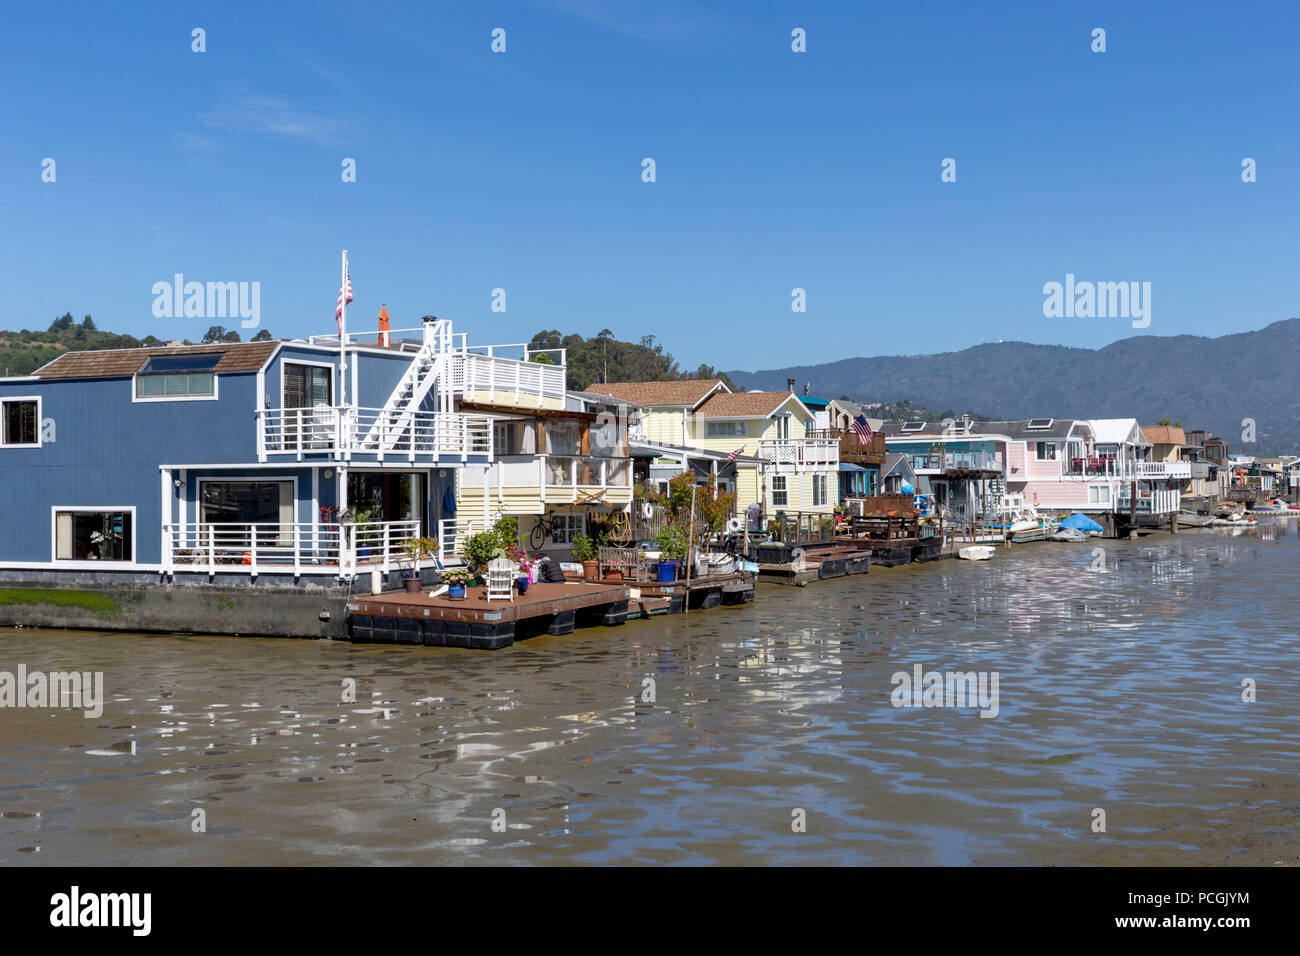 Sausalito Floating Homes, Sausalito, California, United States of America, Tuesday, June 05, 2018. - Stock Image